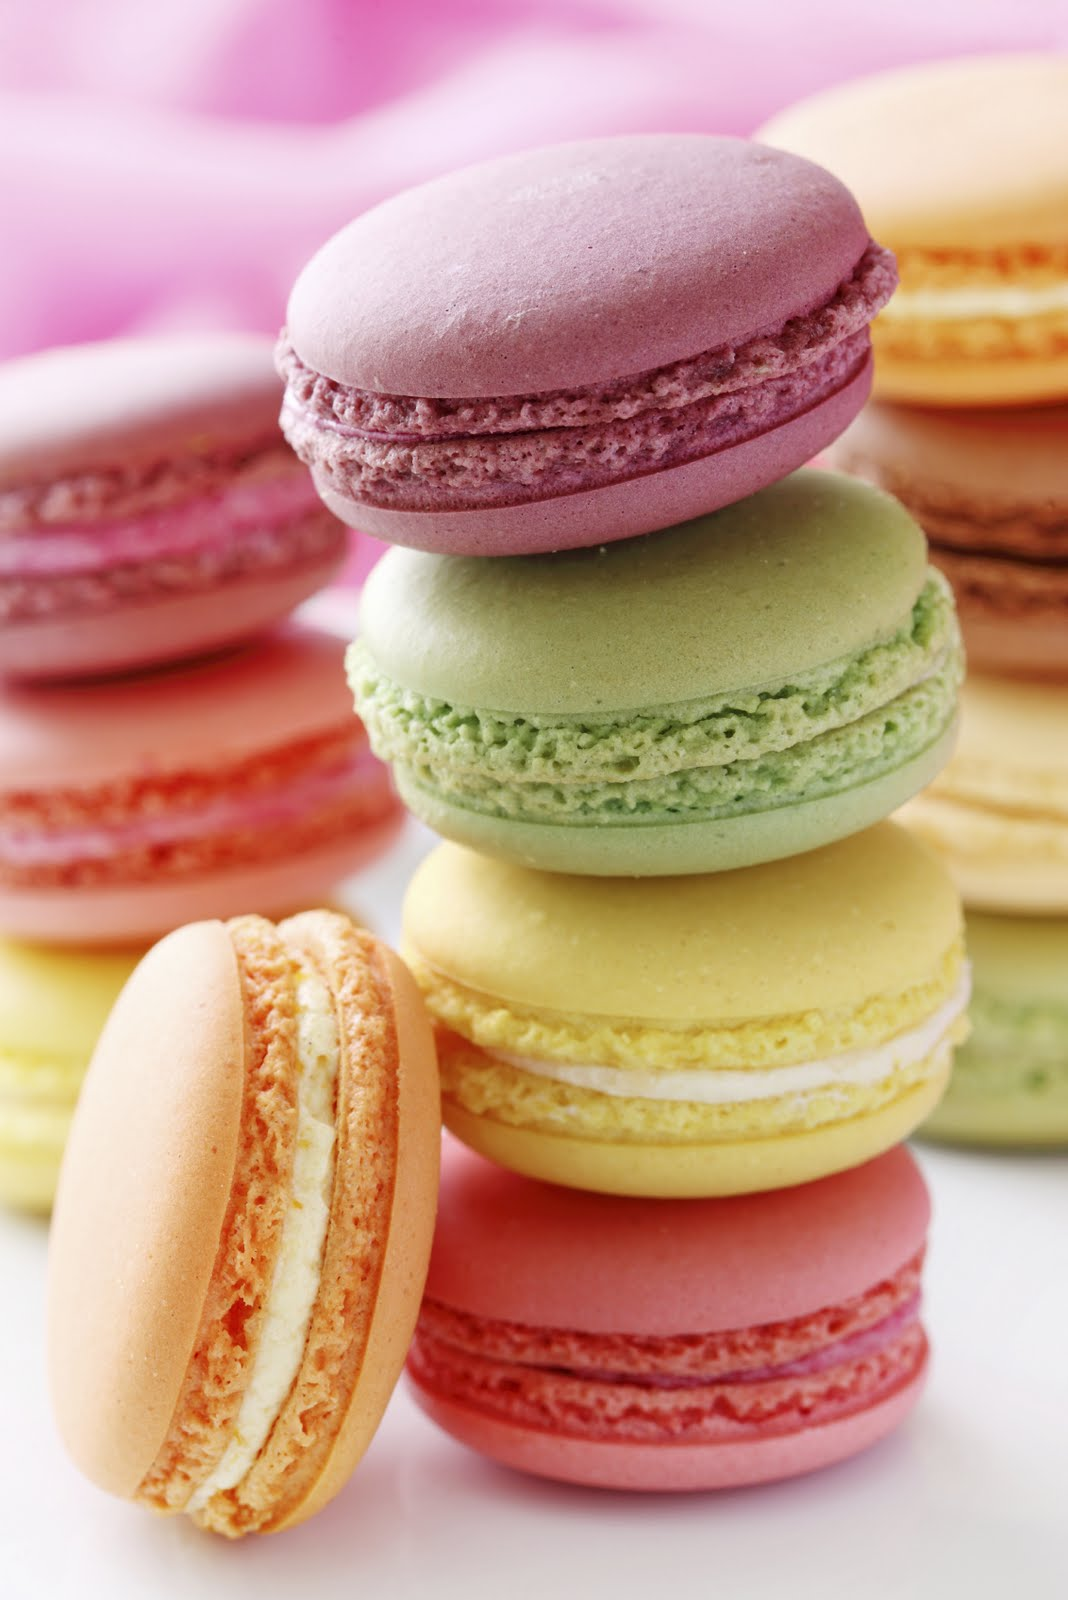 The Rise of the French Macaron